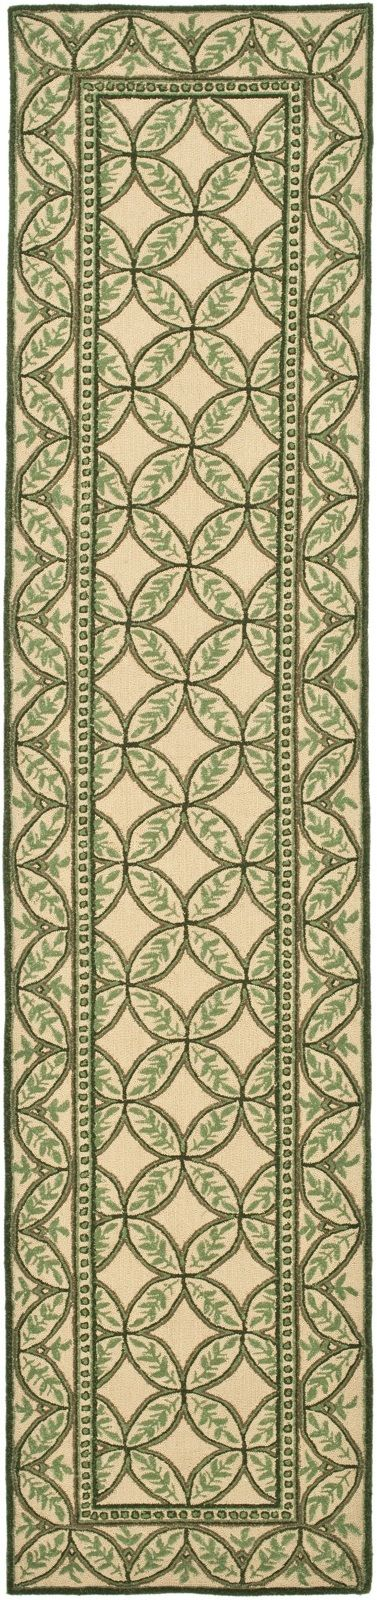 safavieh wilton contemporary area rug collection